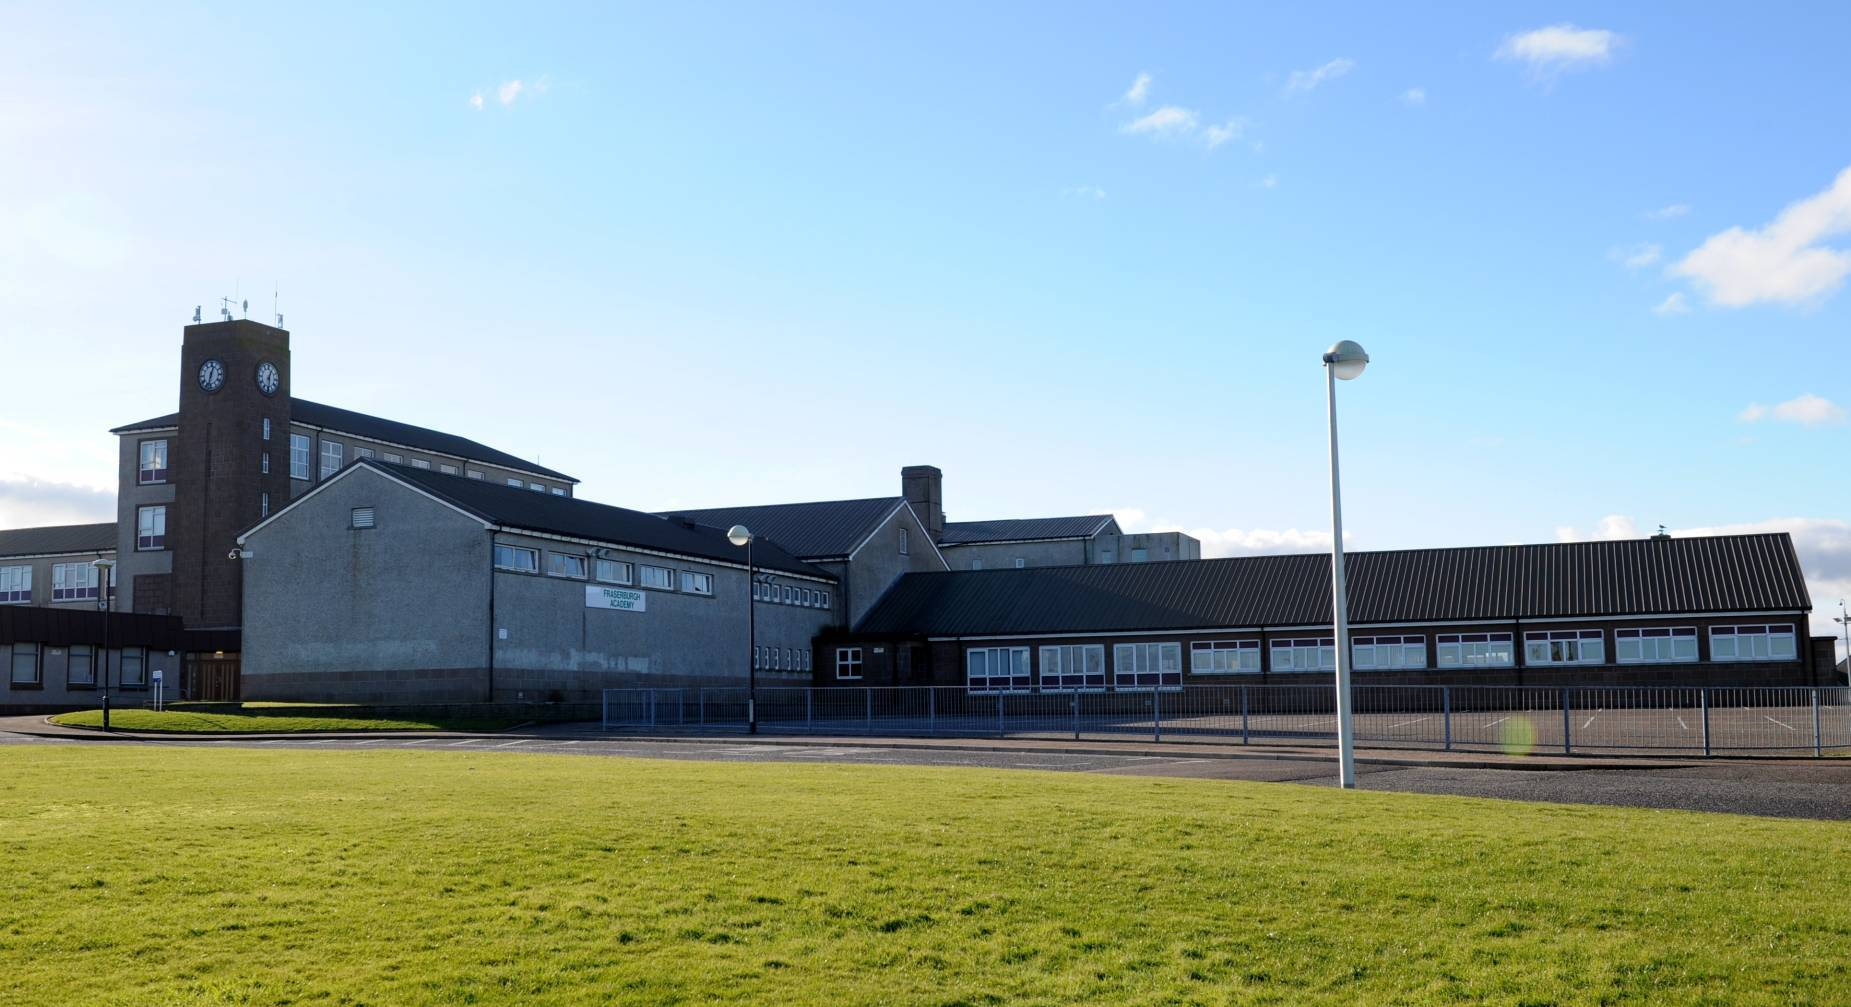 Broken windows at Fraserburgh Academy are believed to cost more than £10,000 to replace